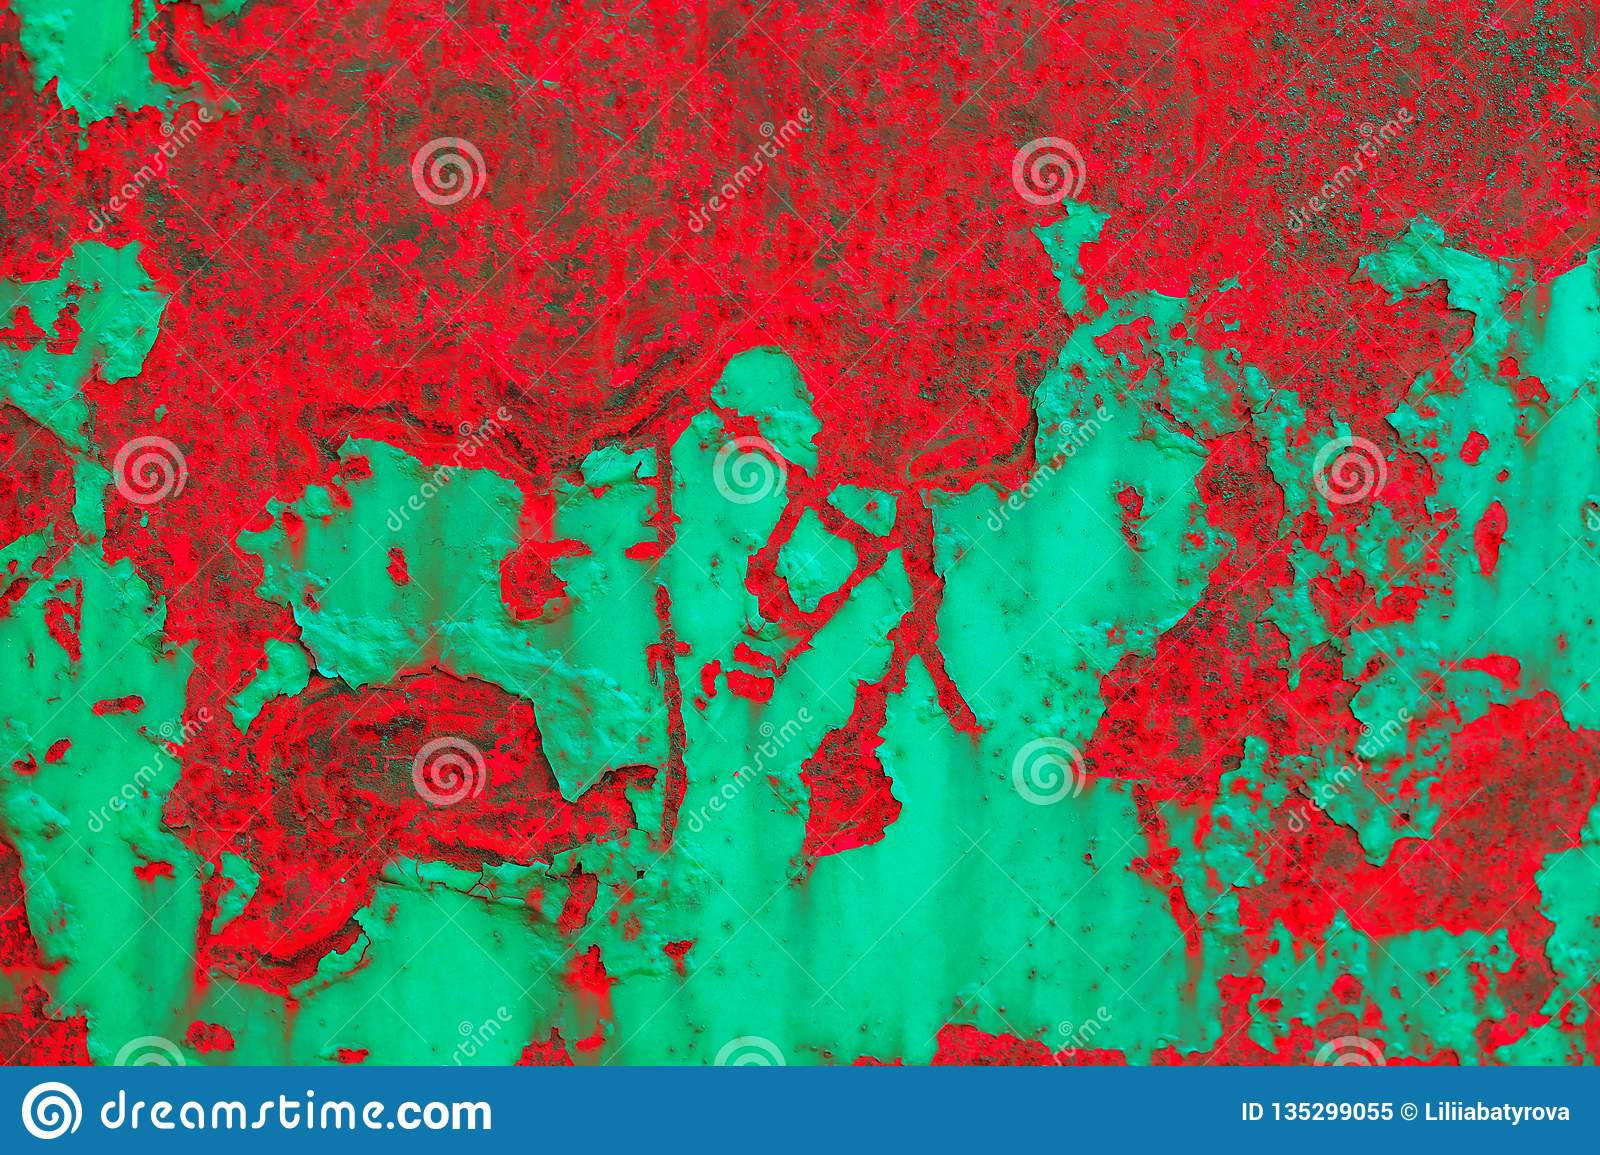 Abstract grunge background. Detailed red-and-green texture